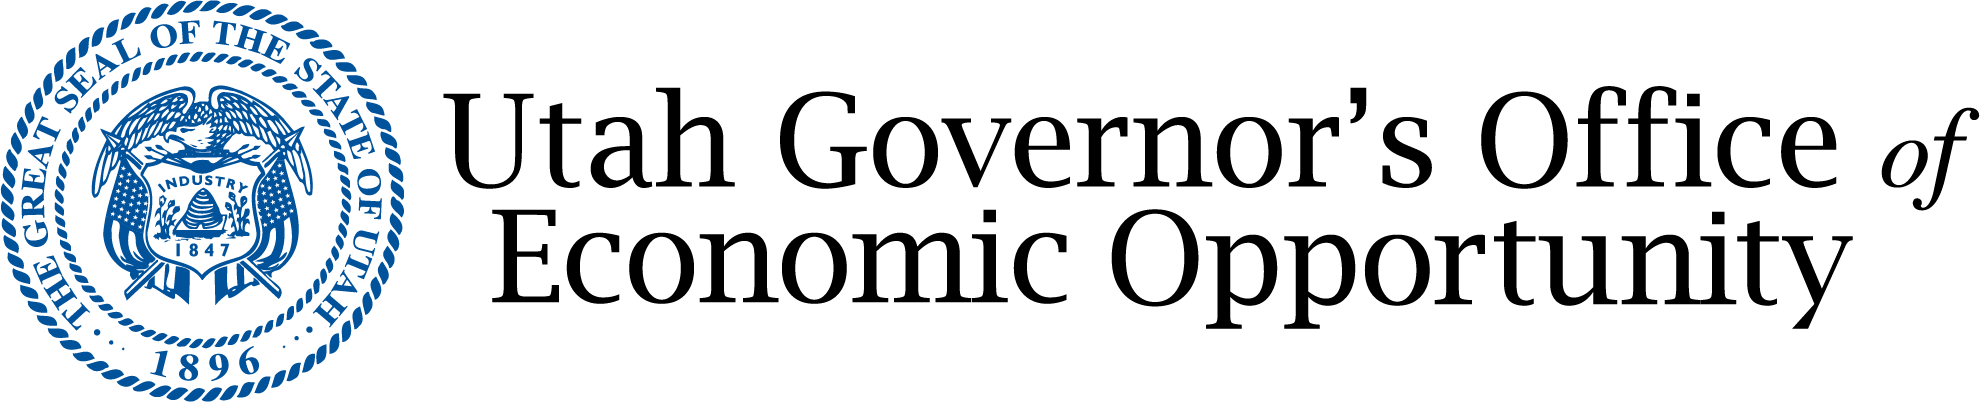 The logo of the Utah Governor's Office of Economic Opportunity.